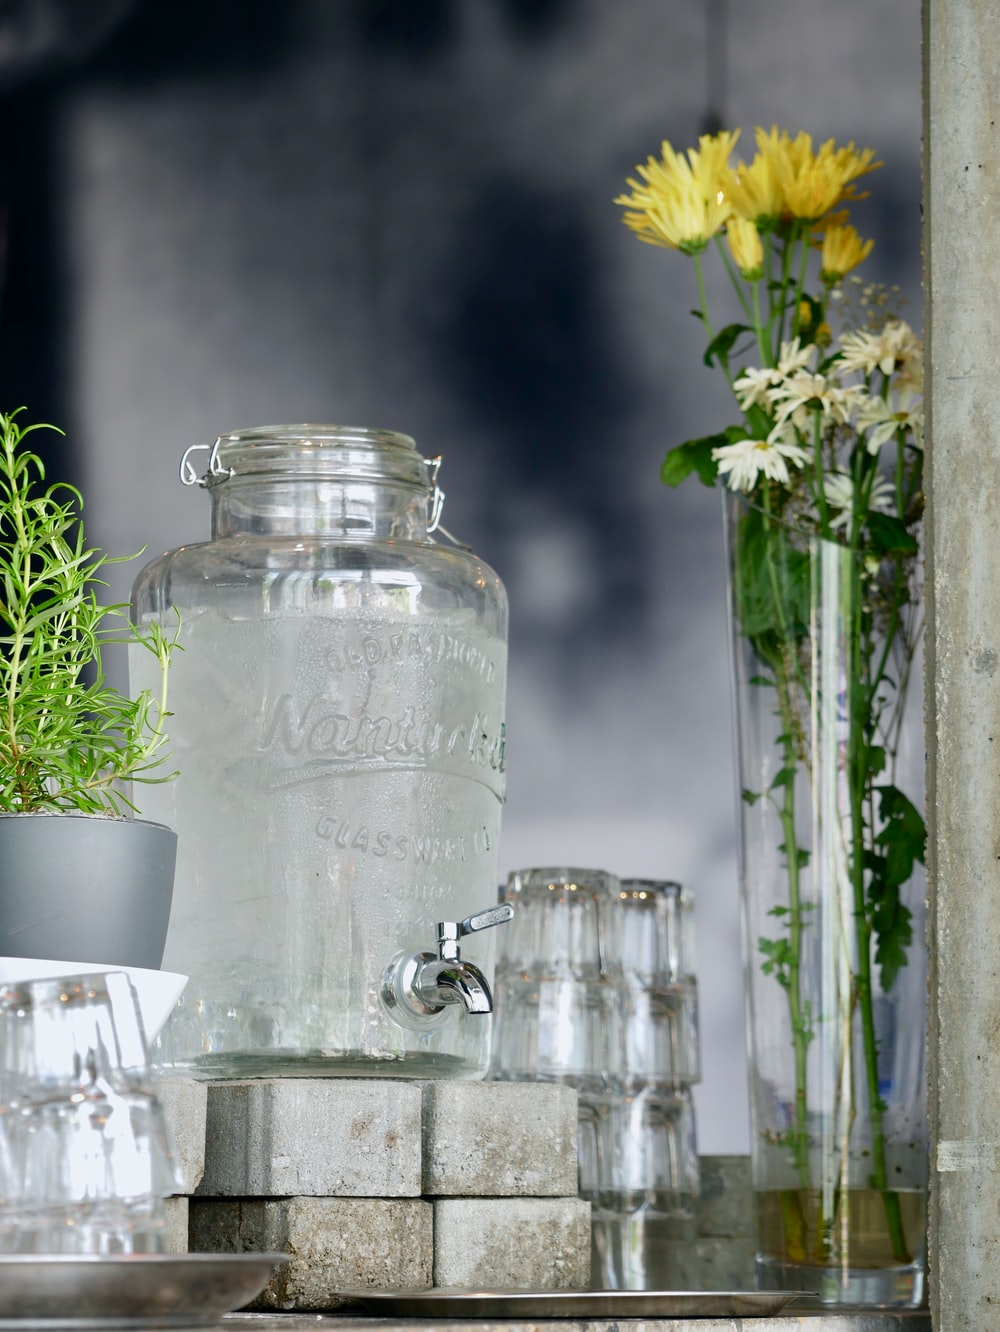 clear glass beverage dispenser beside green leafed plant